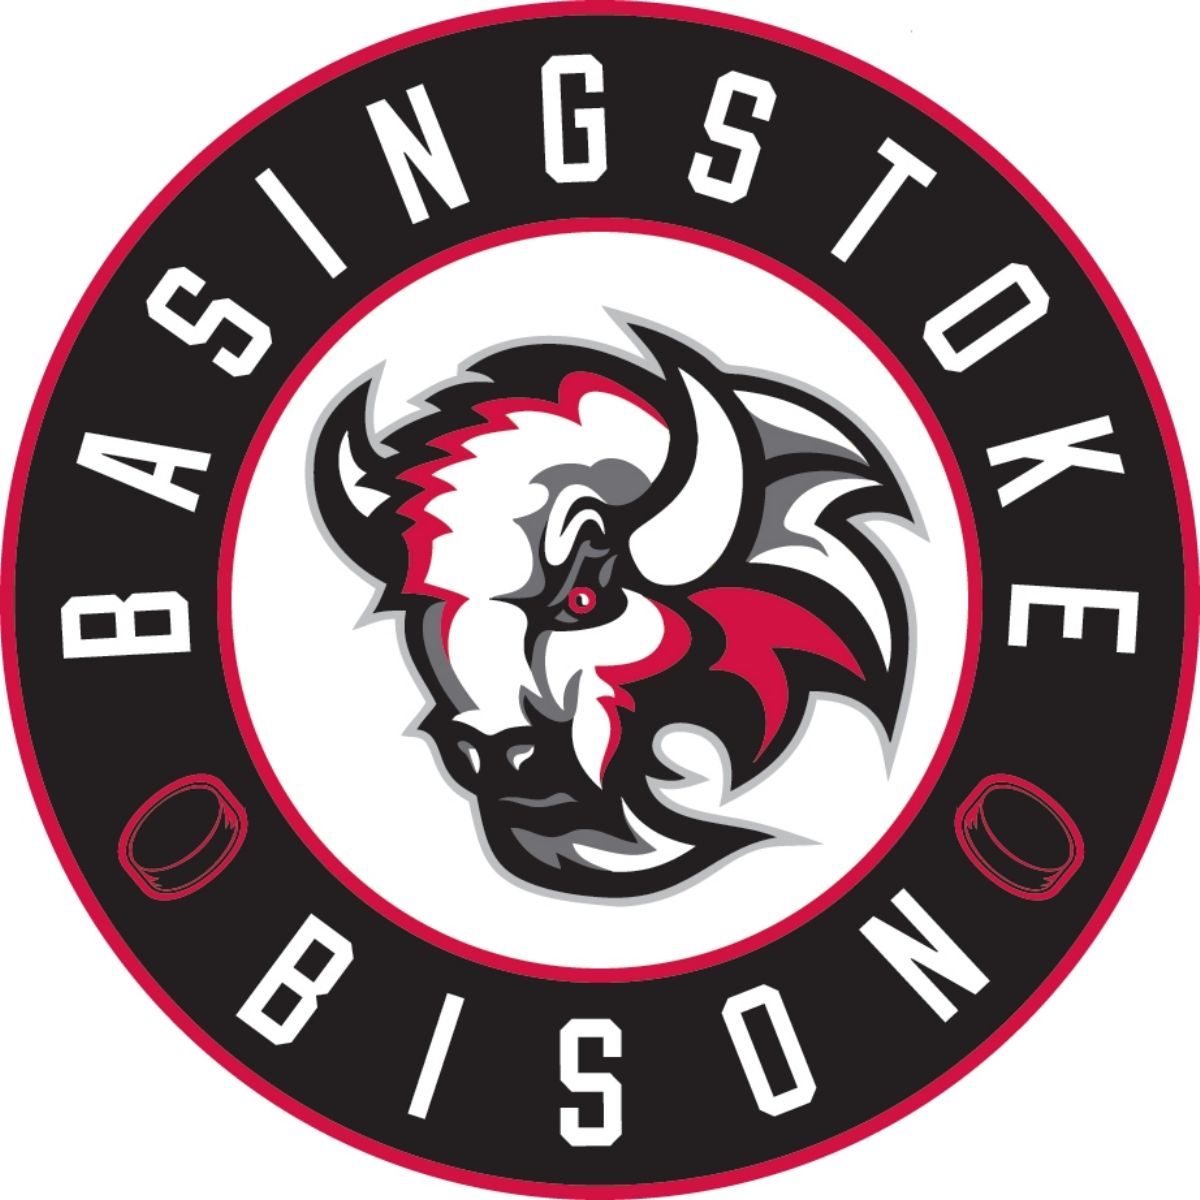 Under-12 Bison into top five after win over Swindon